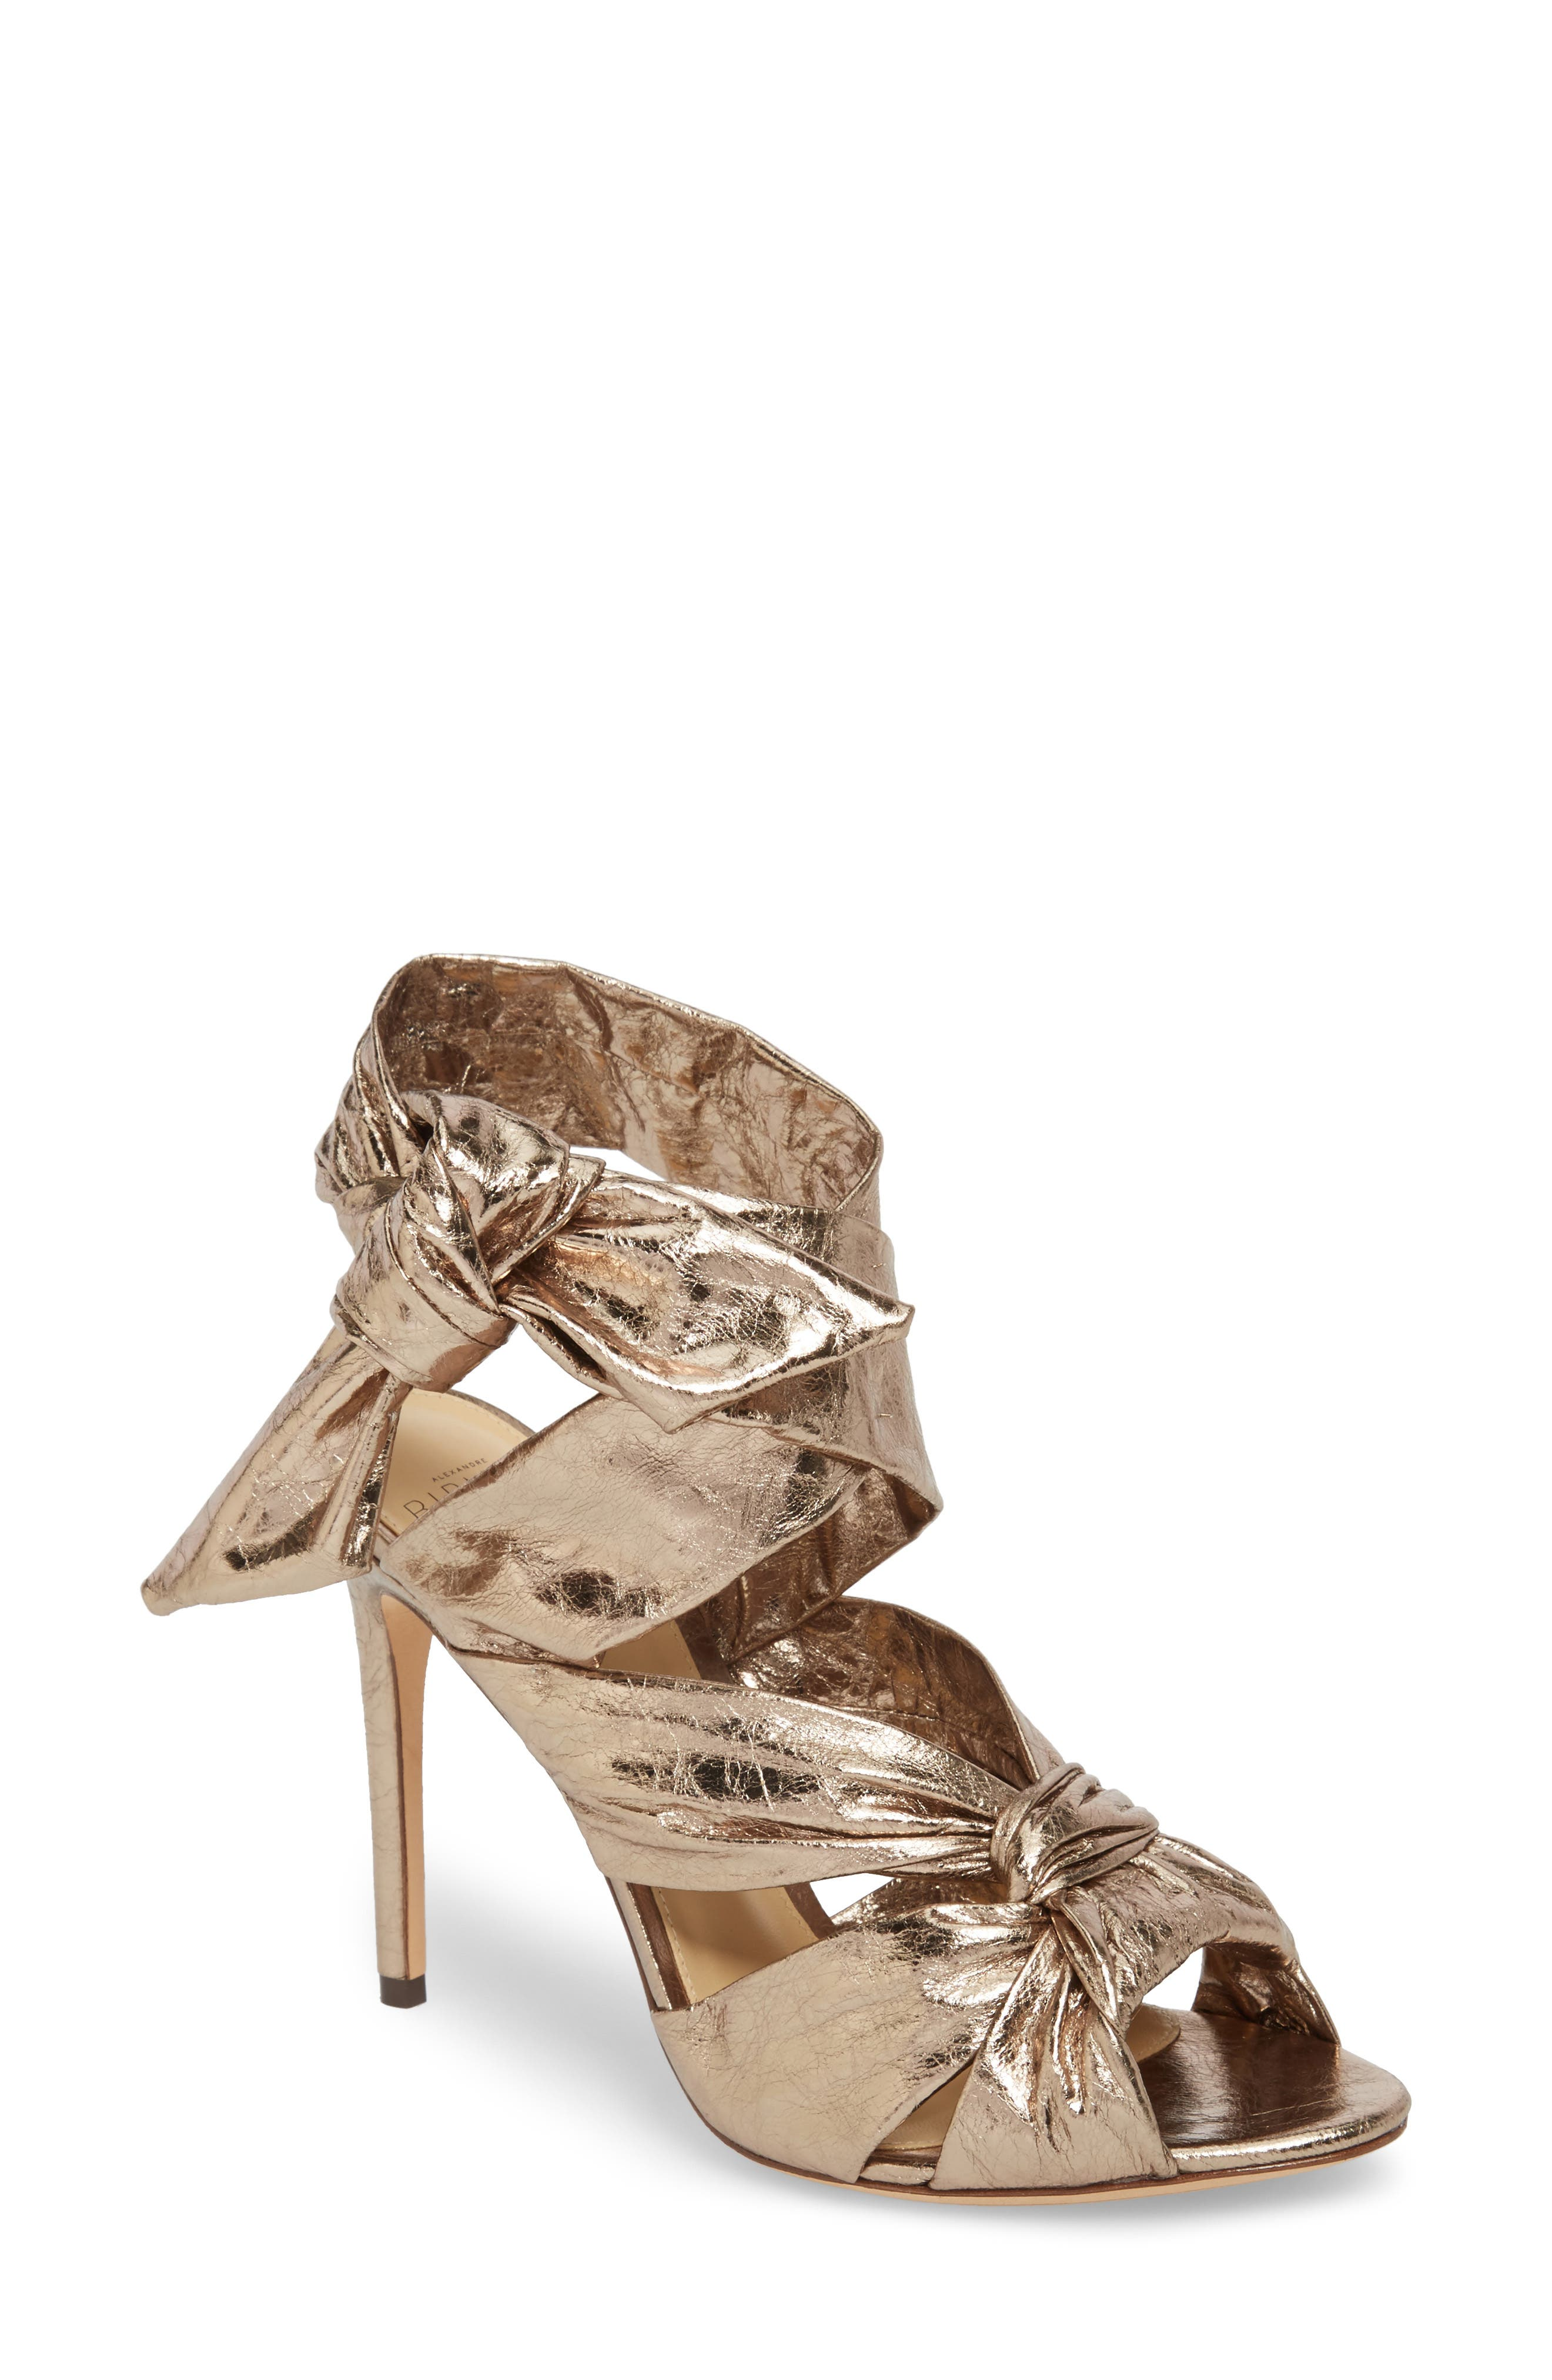 Alternate Image 1 Selected - Alexandre Birman Maleah Sandal (Women)